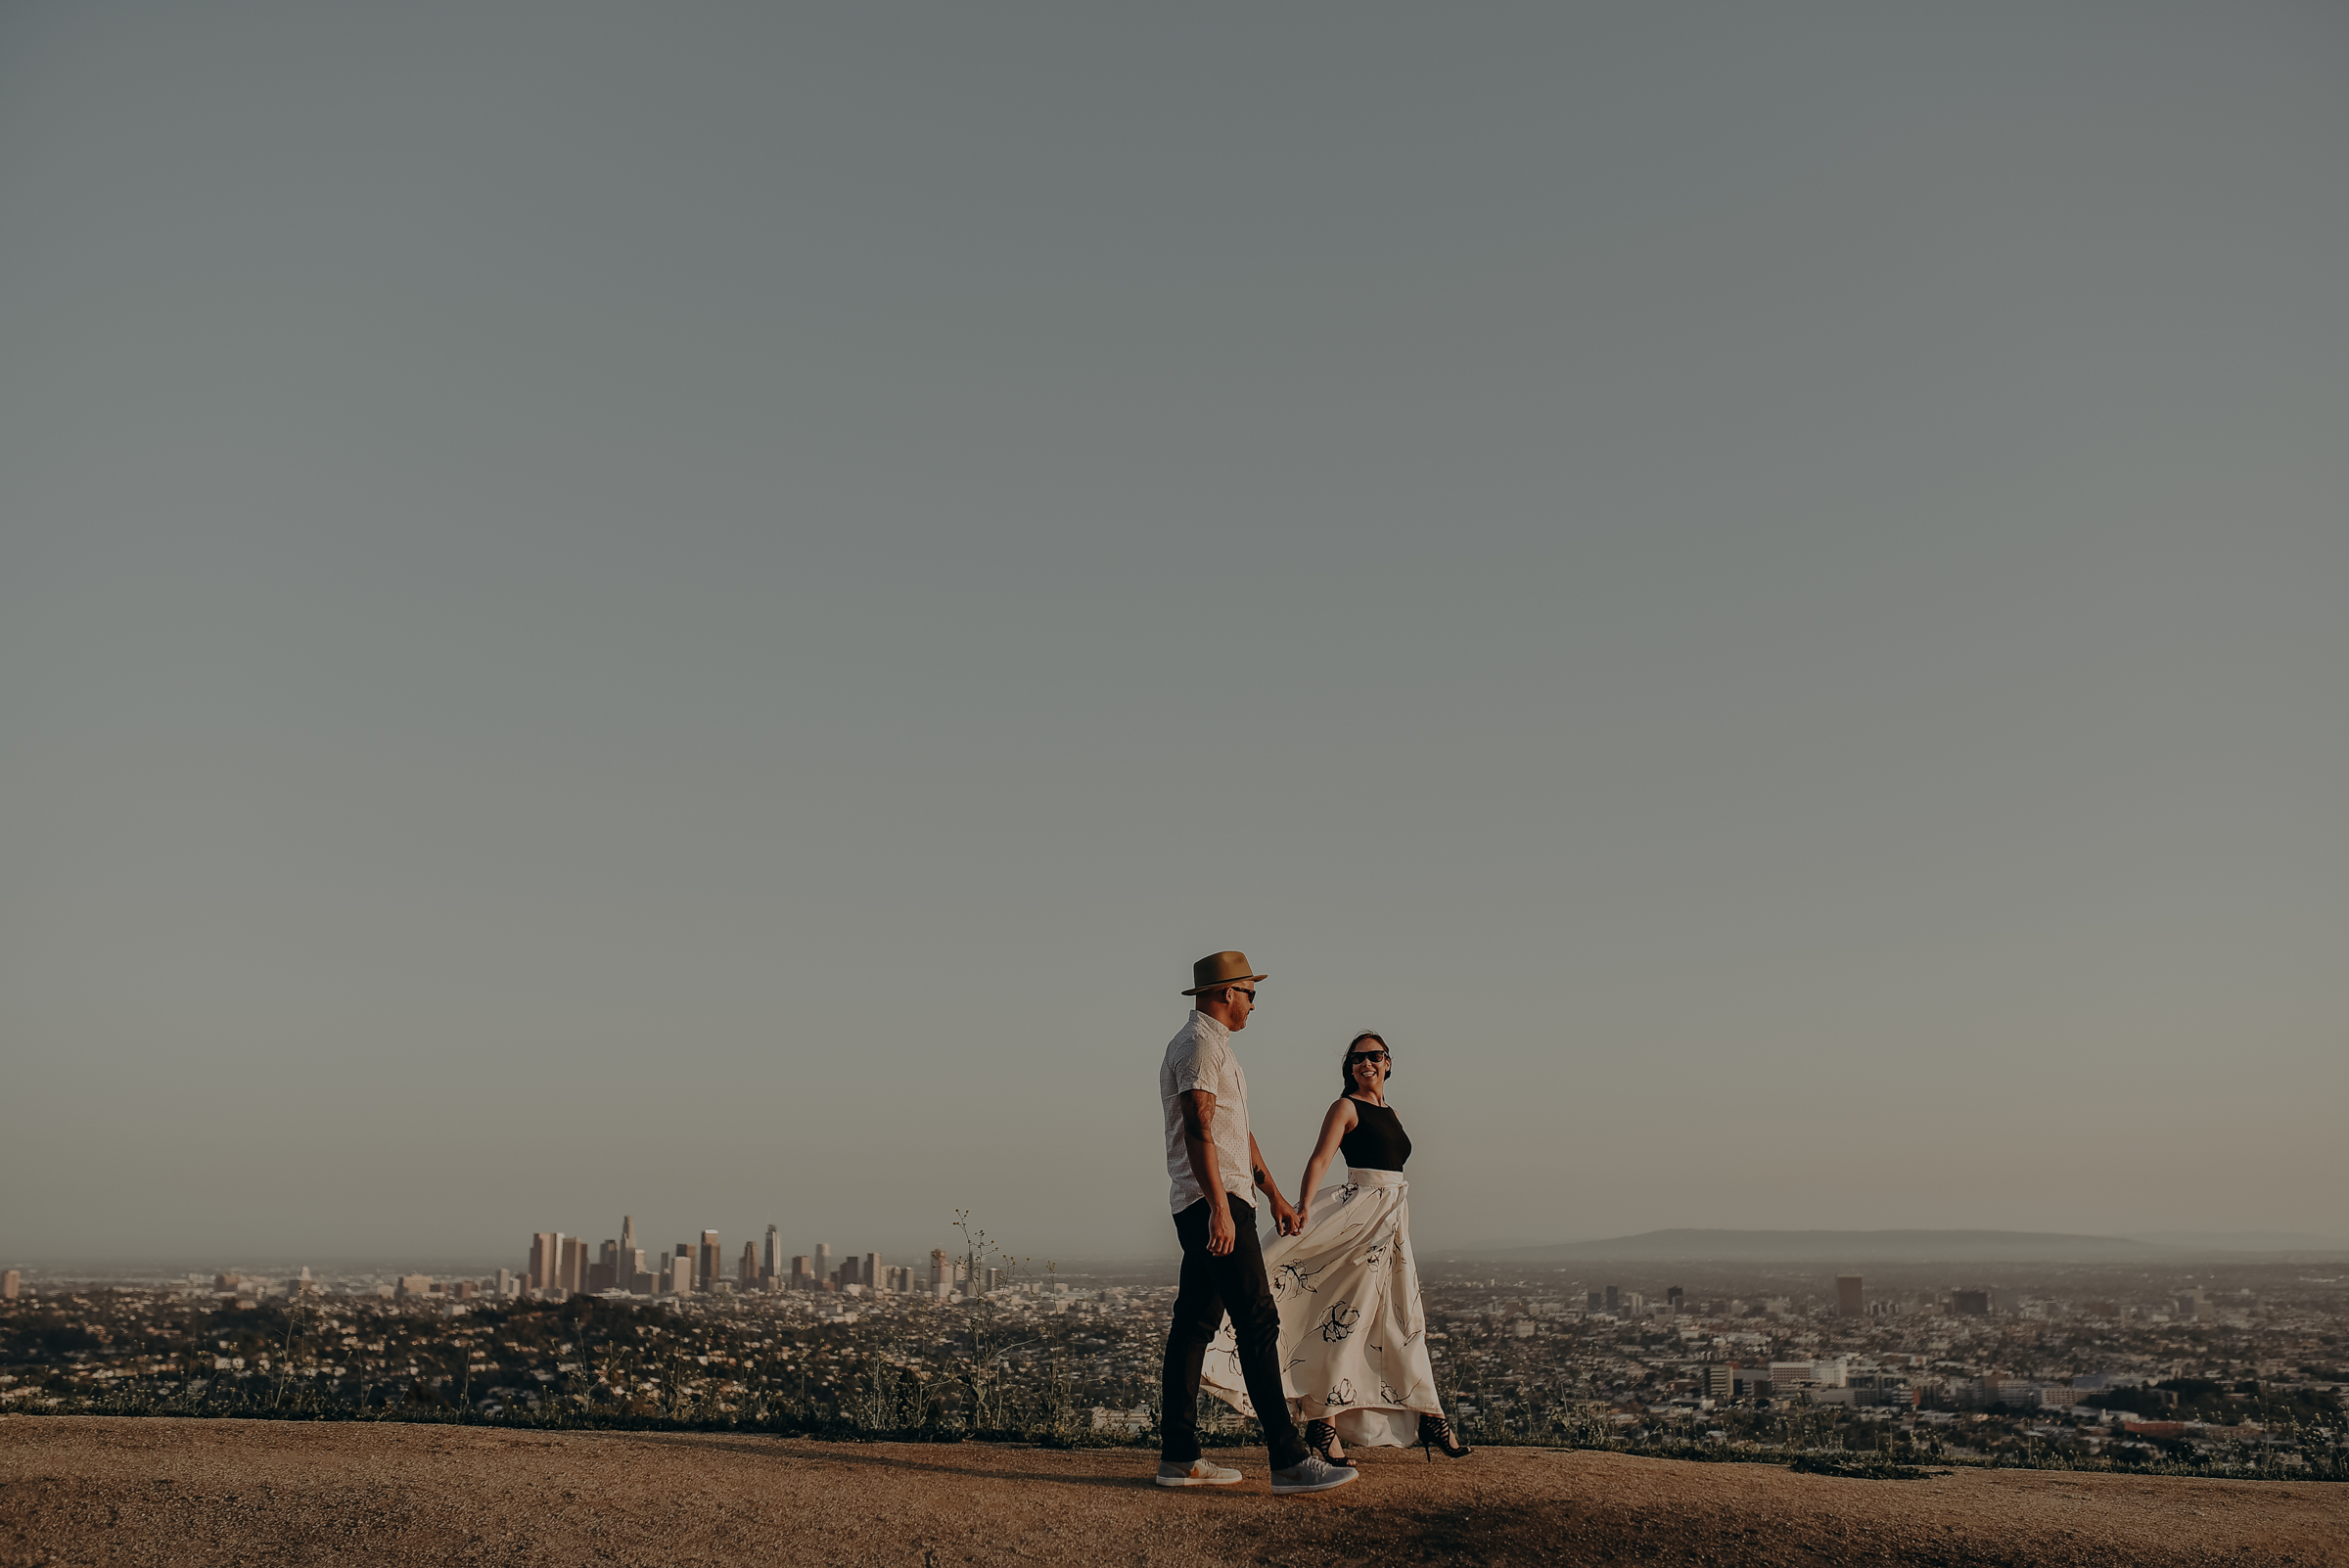 Los Angeles Wedding Photographers - Griffith Park Engagement - IsaiahAndTaylor.com-037.jpg